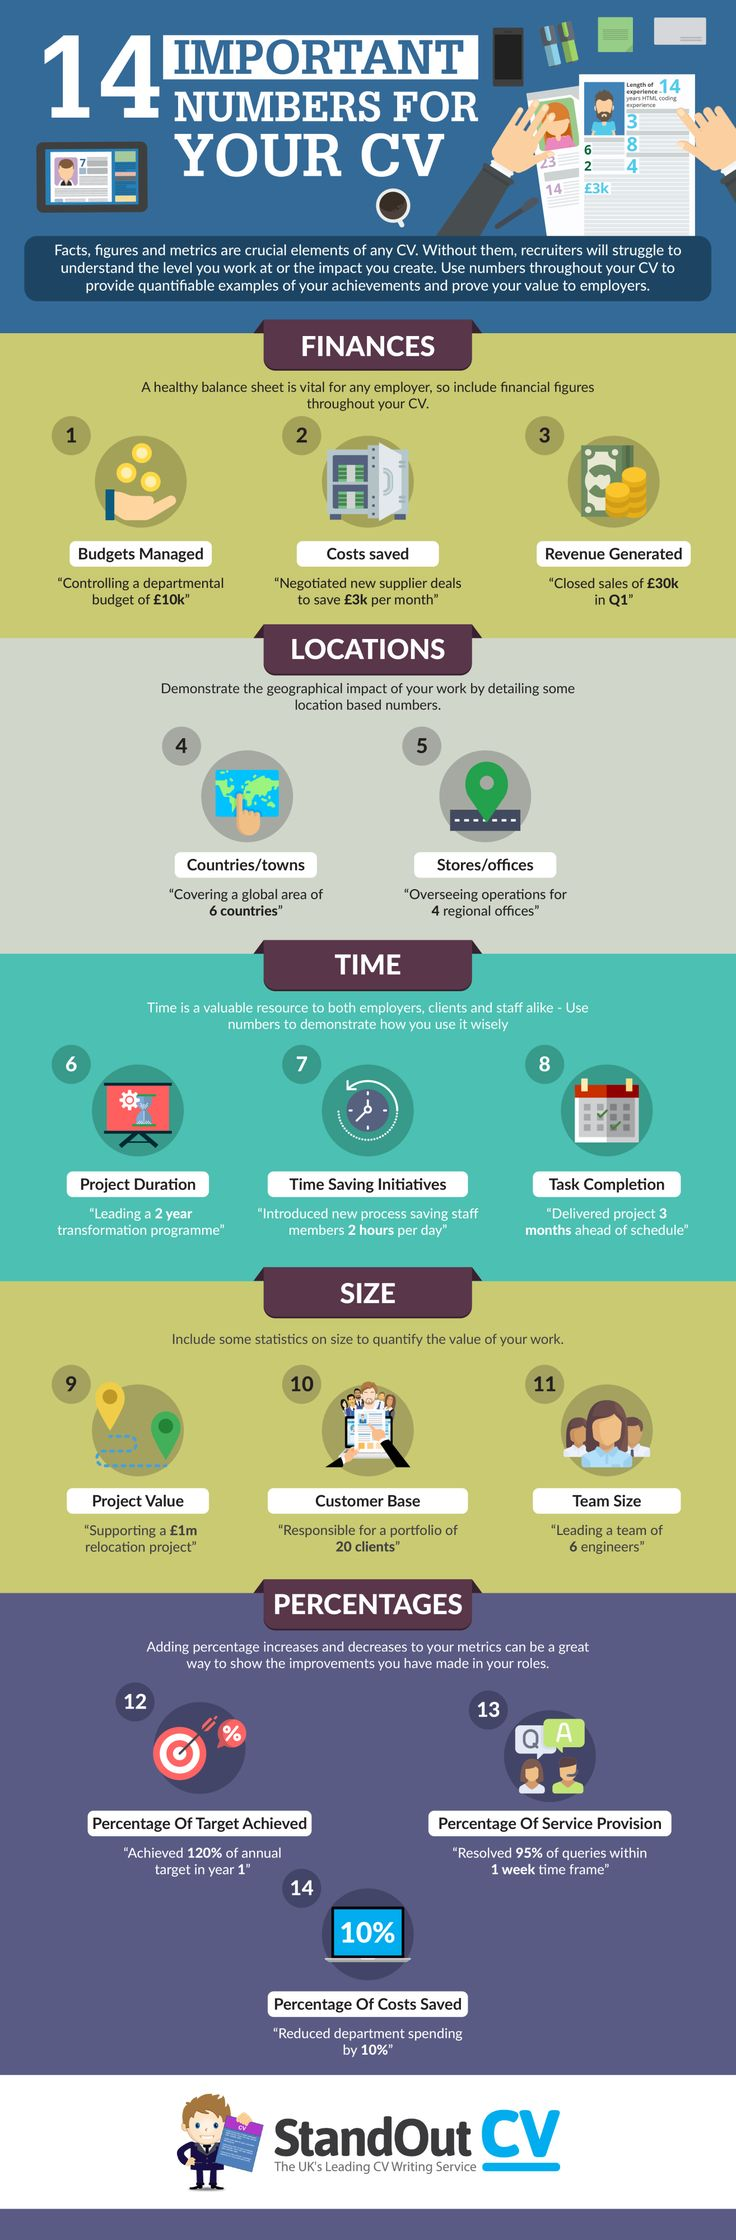 14 Important Numbers for Your CV Infographic - http://elearninginfographics.com/14-important-numbers-for-your-cv/